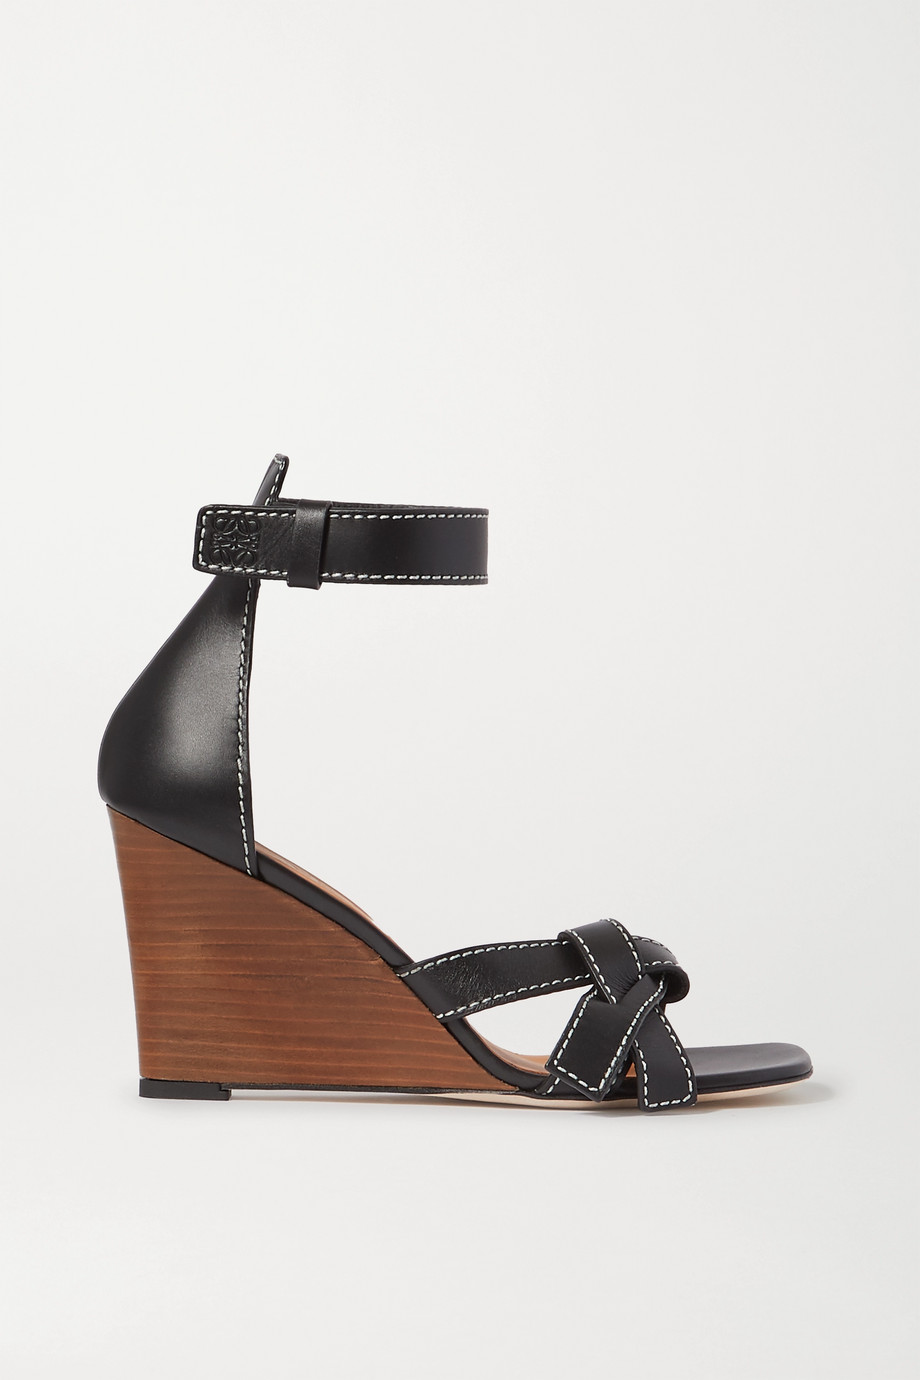 Loewe Gate topstitched leather wedge sandals